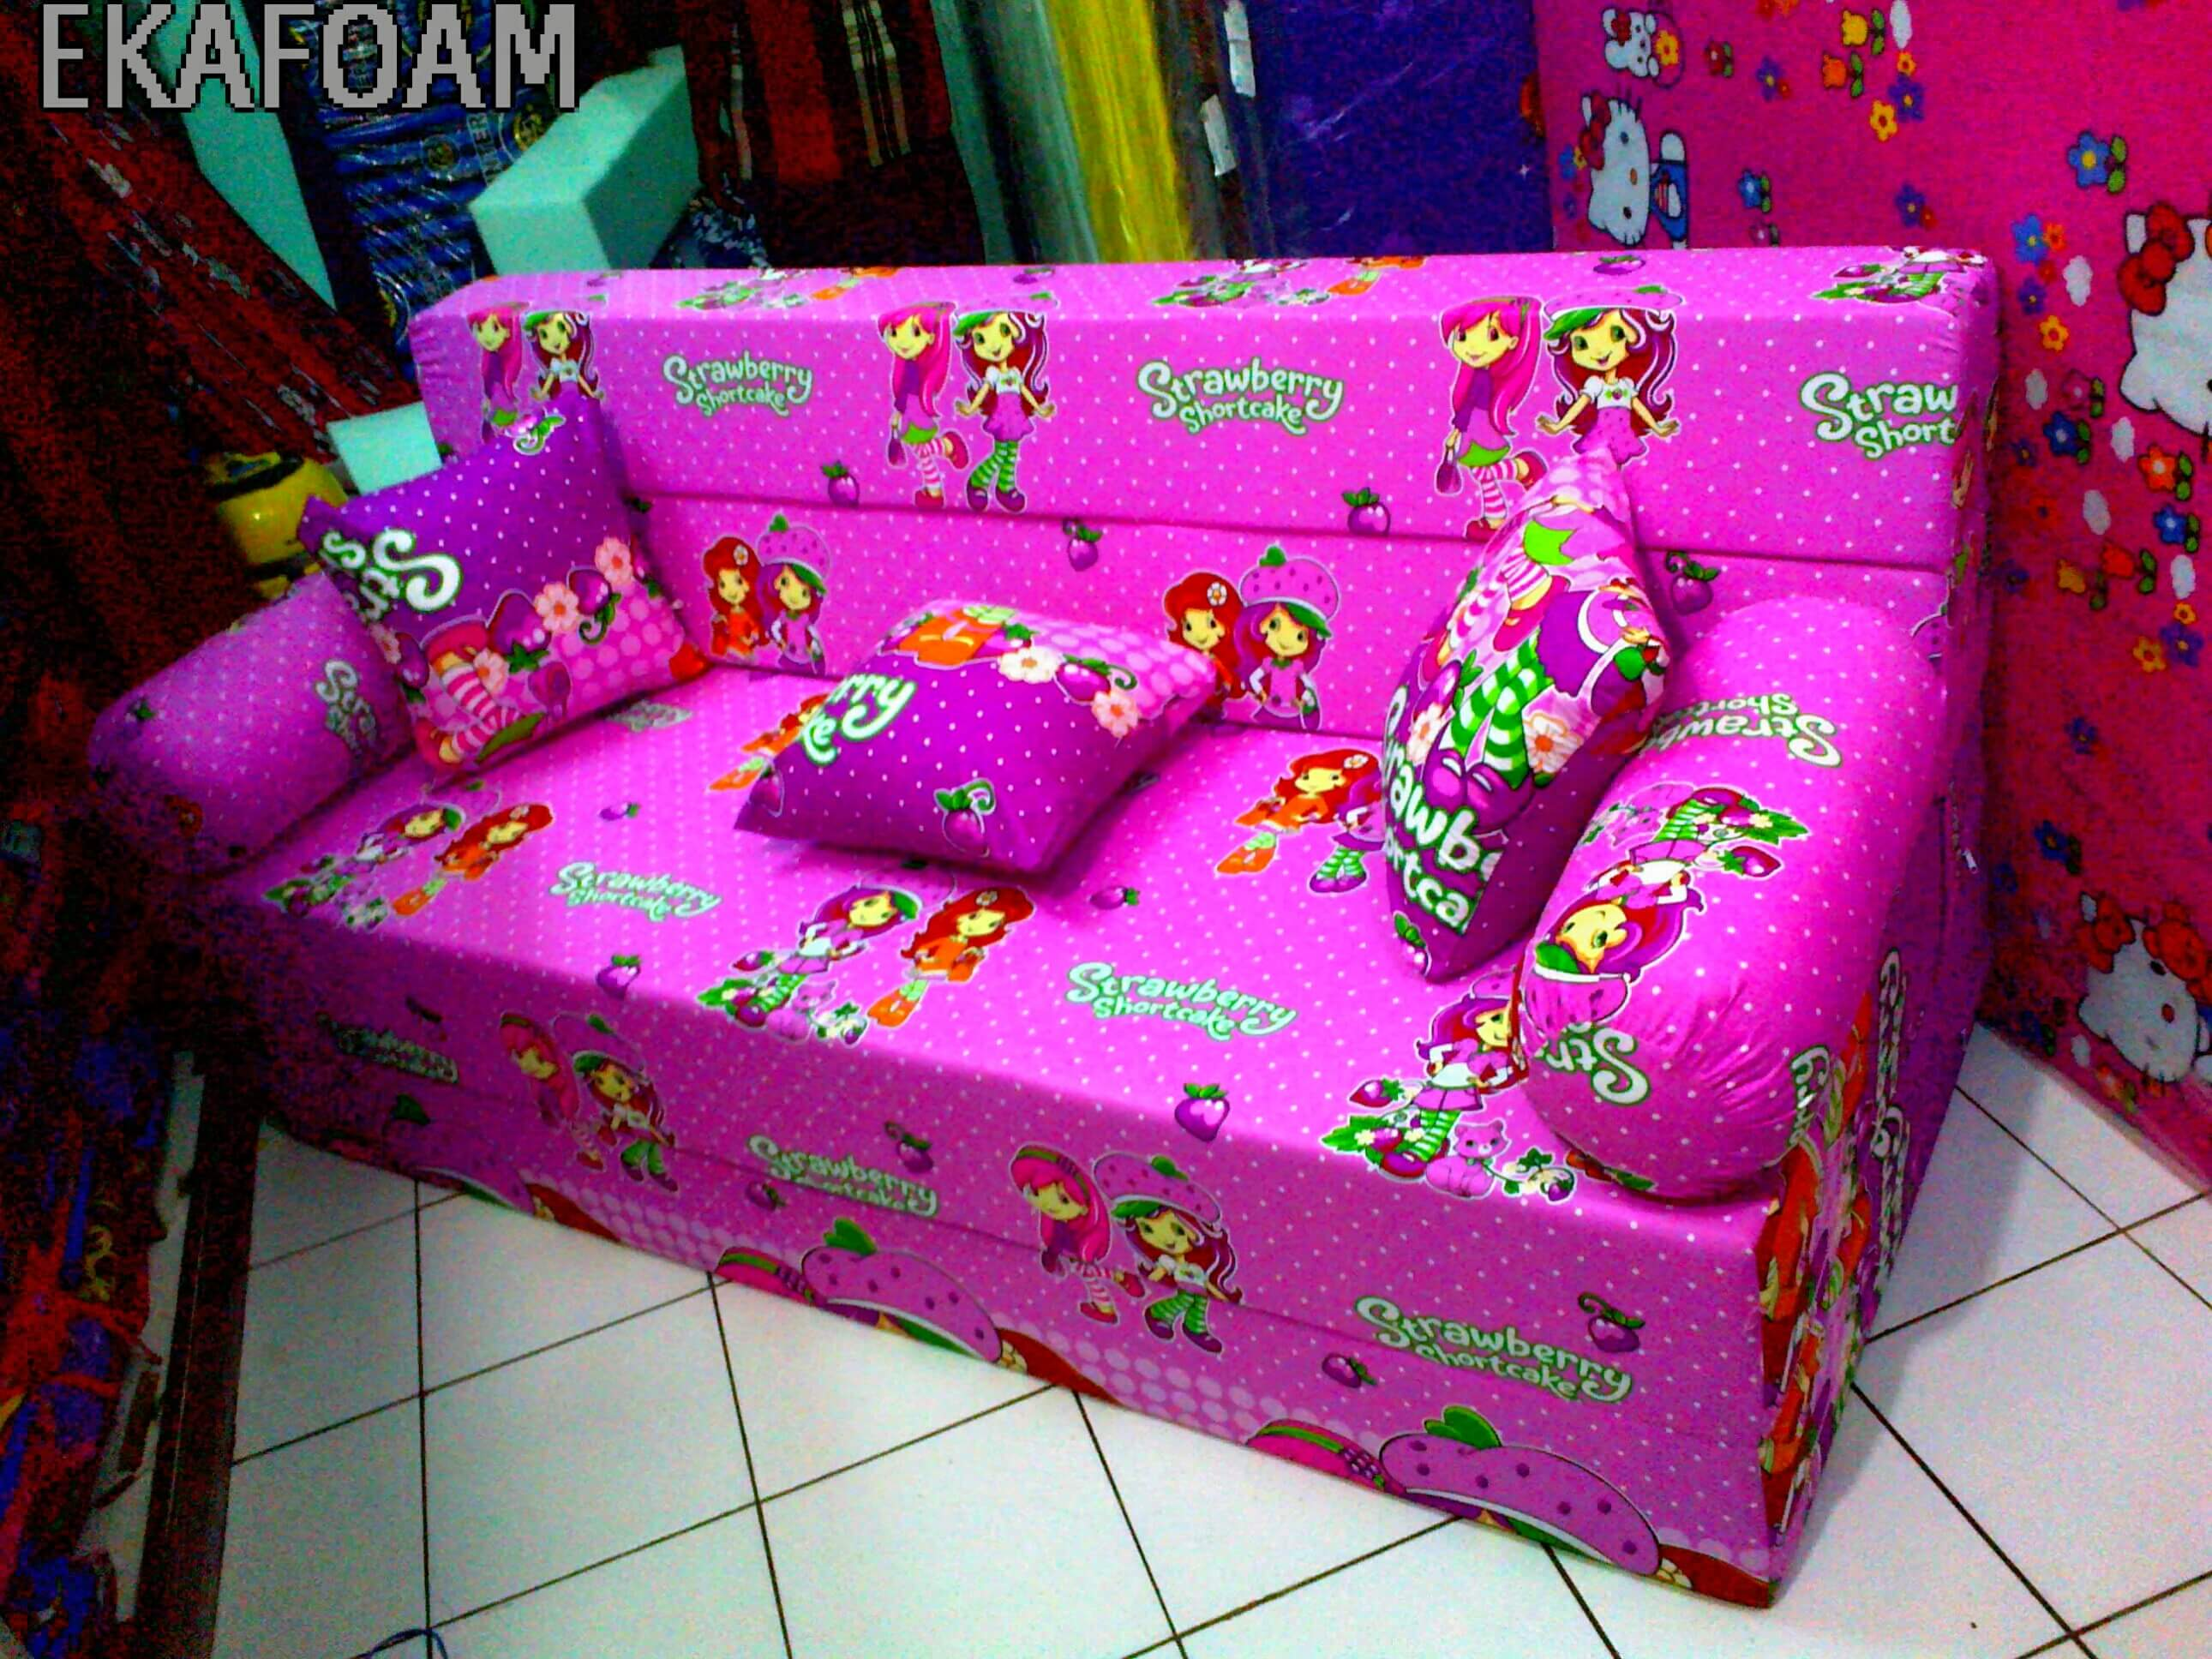 Sofa Bed Inoac Terbaru 2016 Ekafoaminoacs Blog